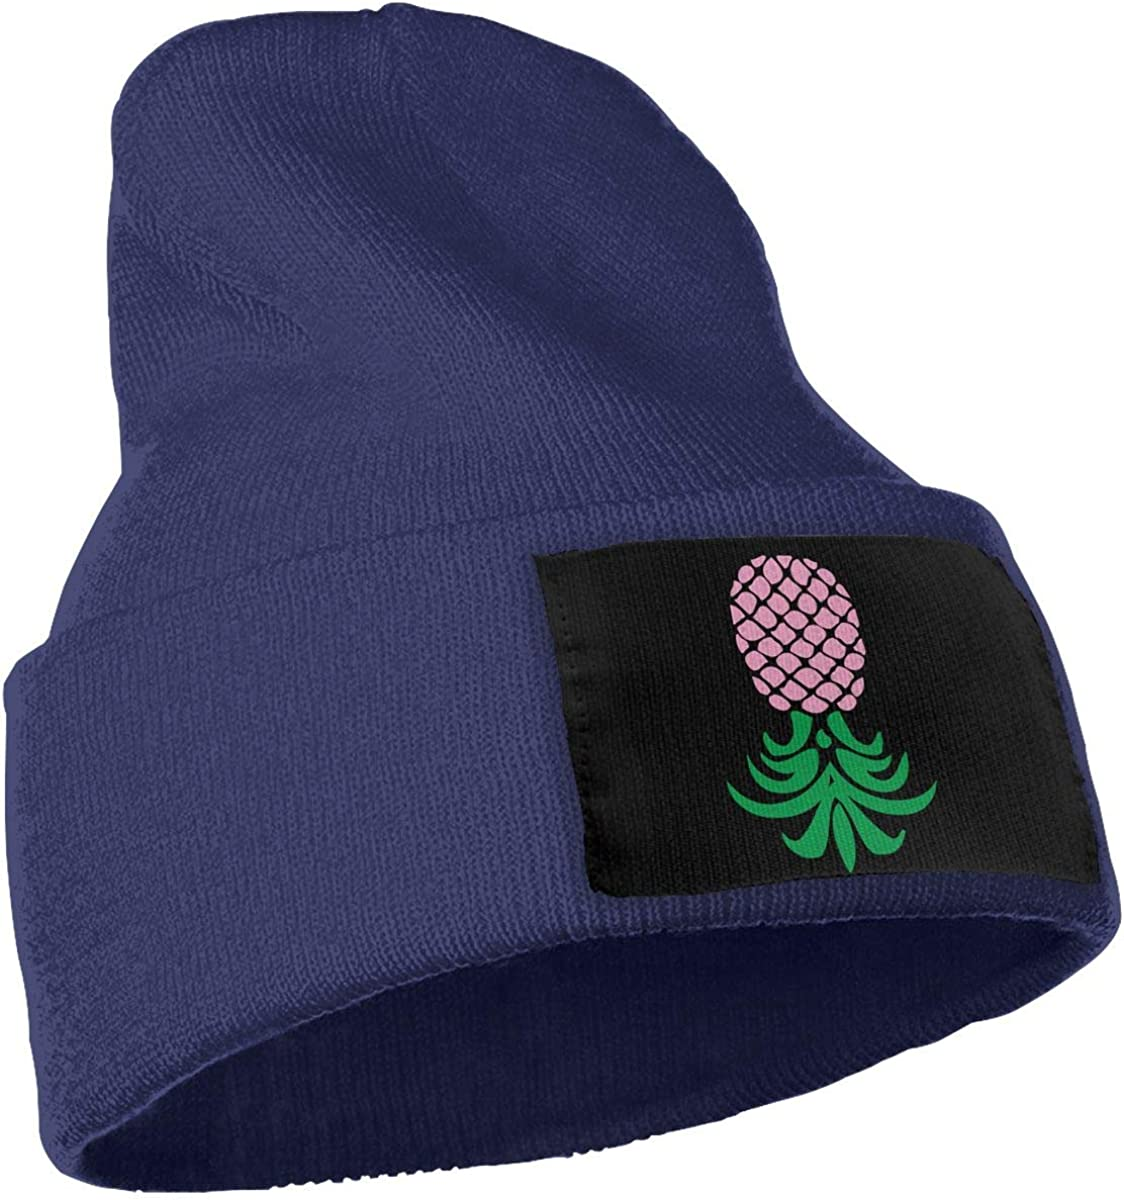 Ydbve81-G Mens and Womens 100/% Acrylic Knitted Hat Cap Upside Down Pineapple Cute Beanie Hat